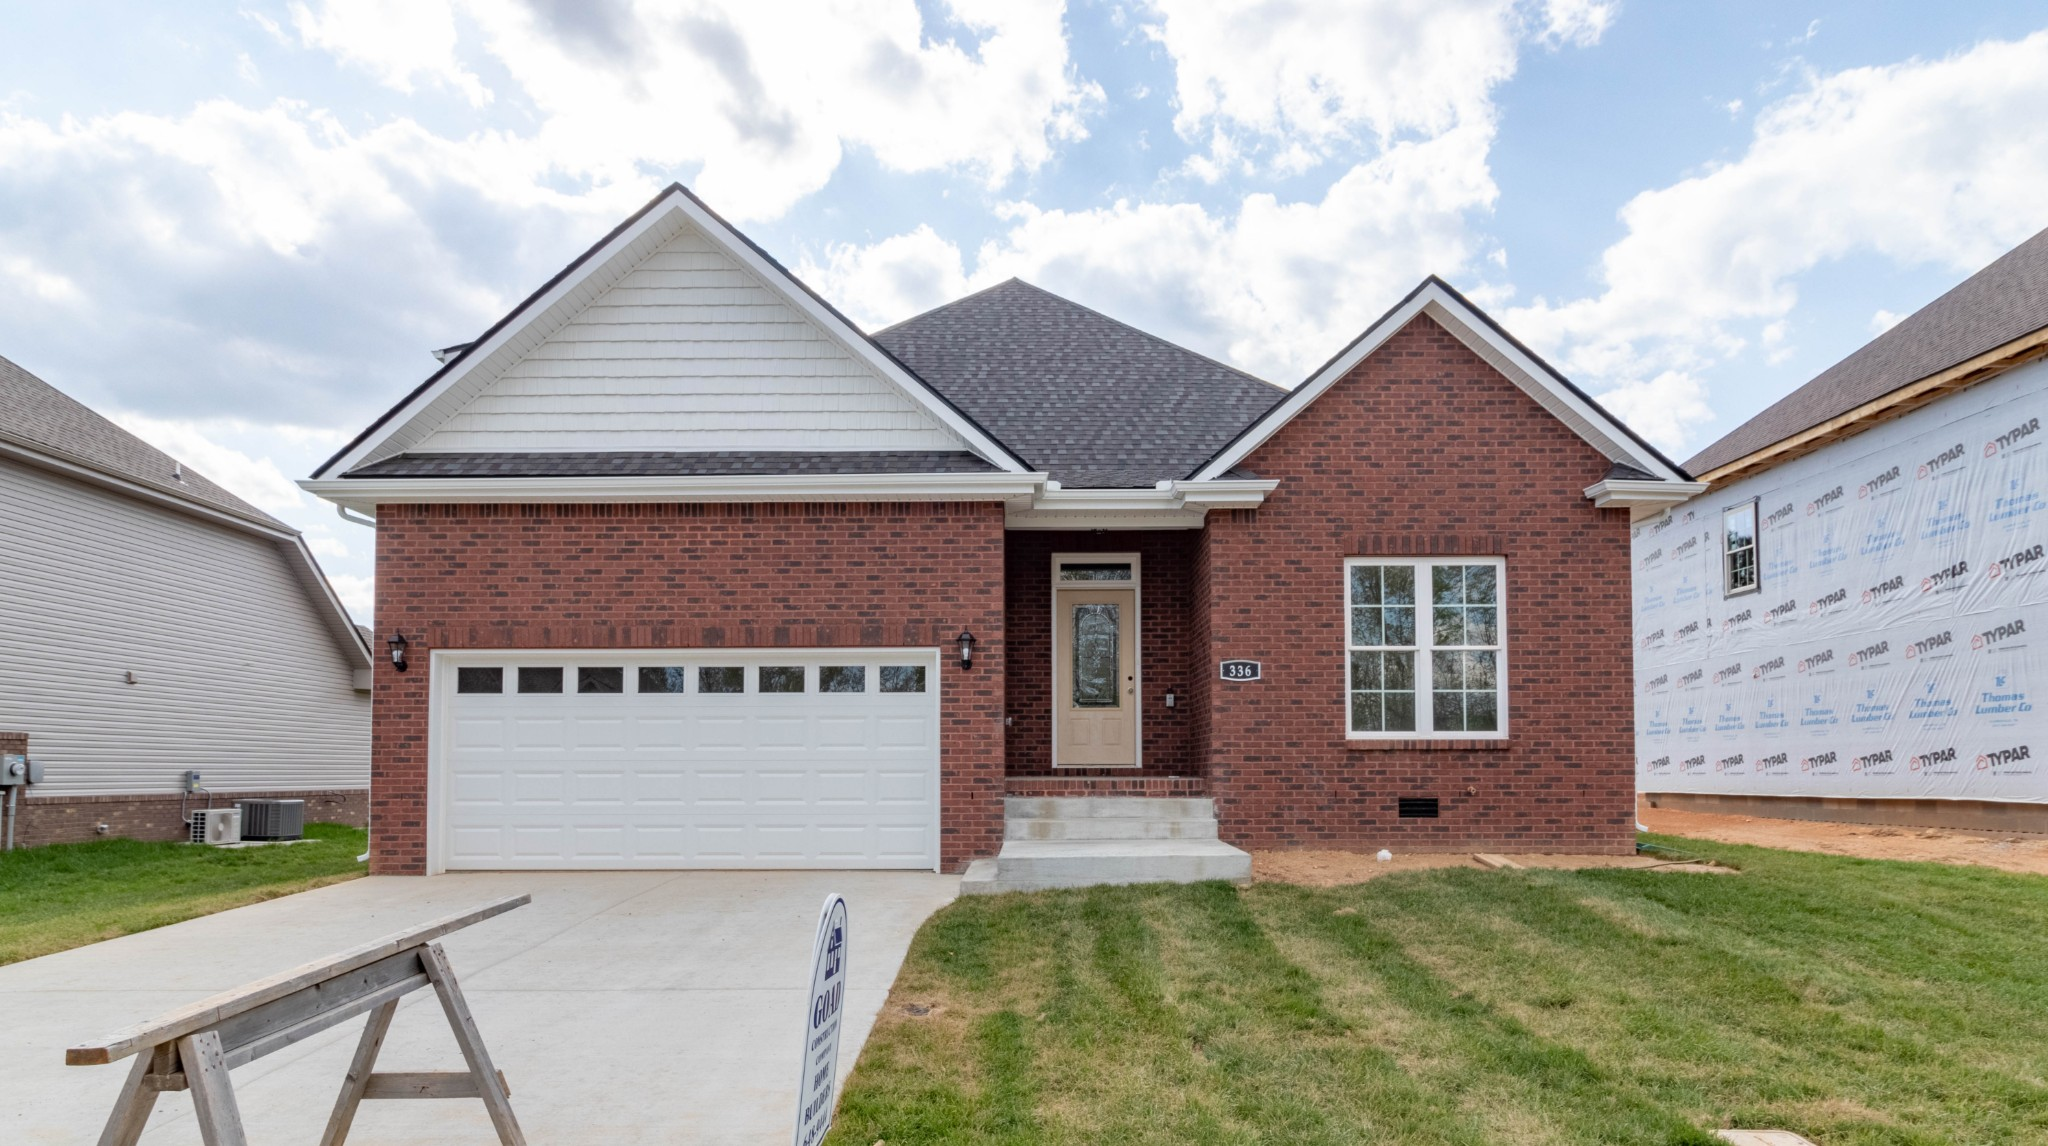 336 Chase Dr, Clarksville, TN 37043 - Clarksville, TN real estate listing